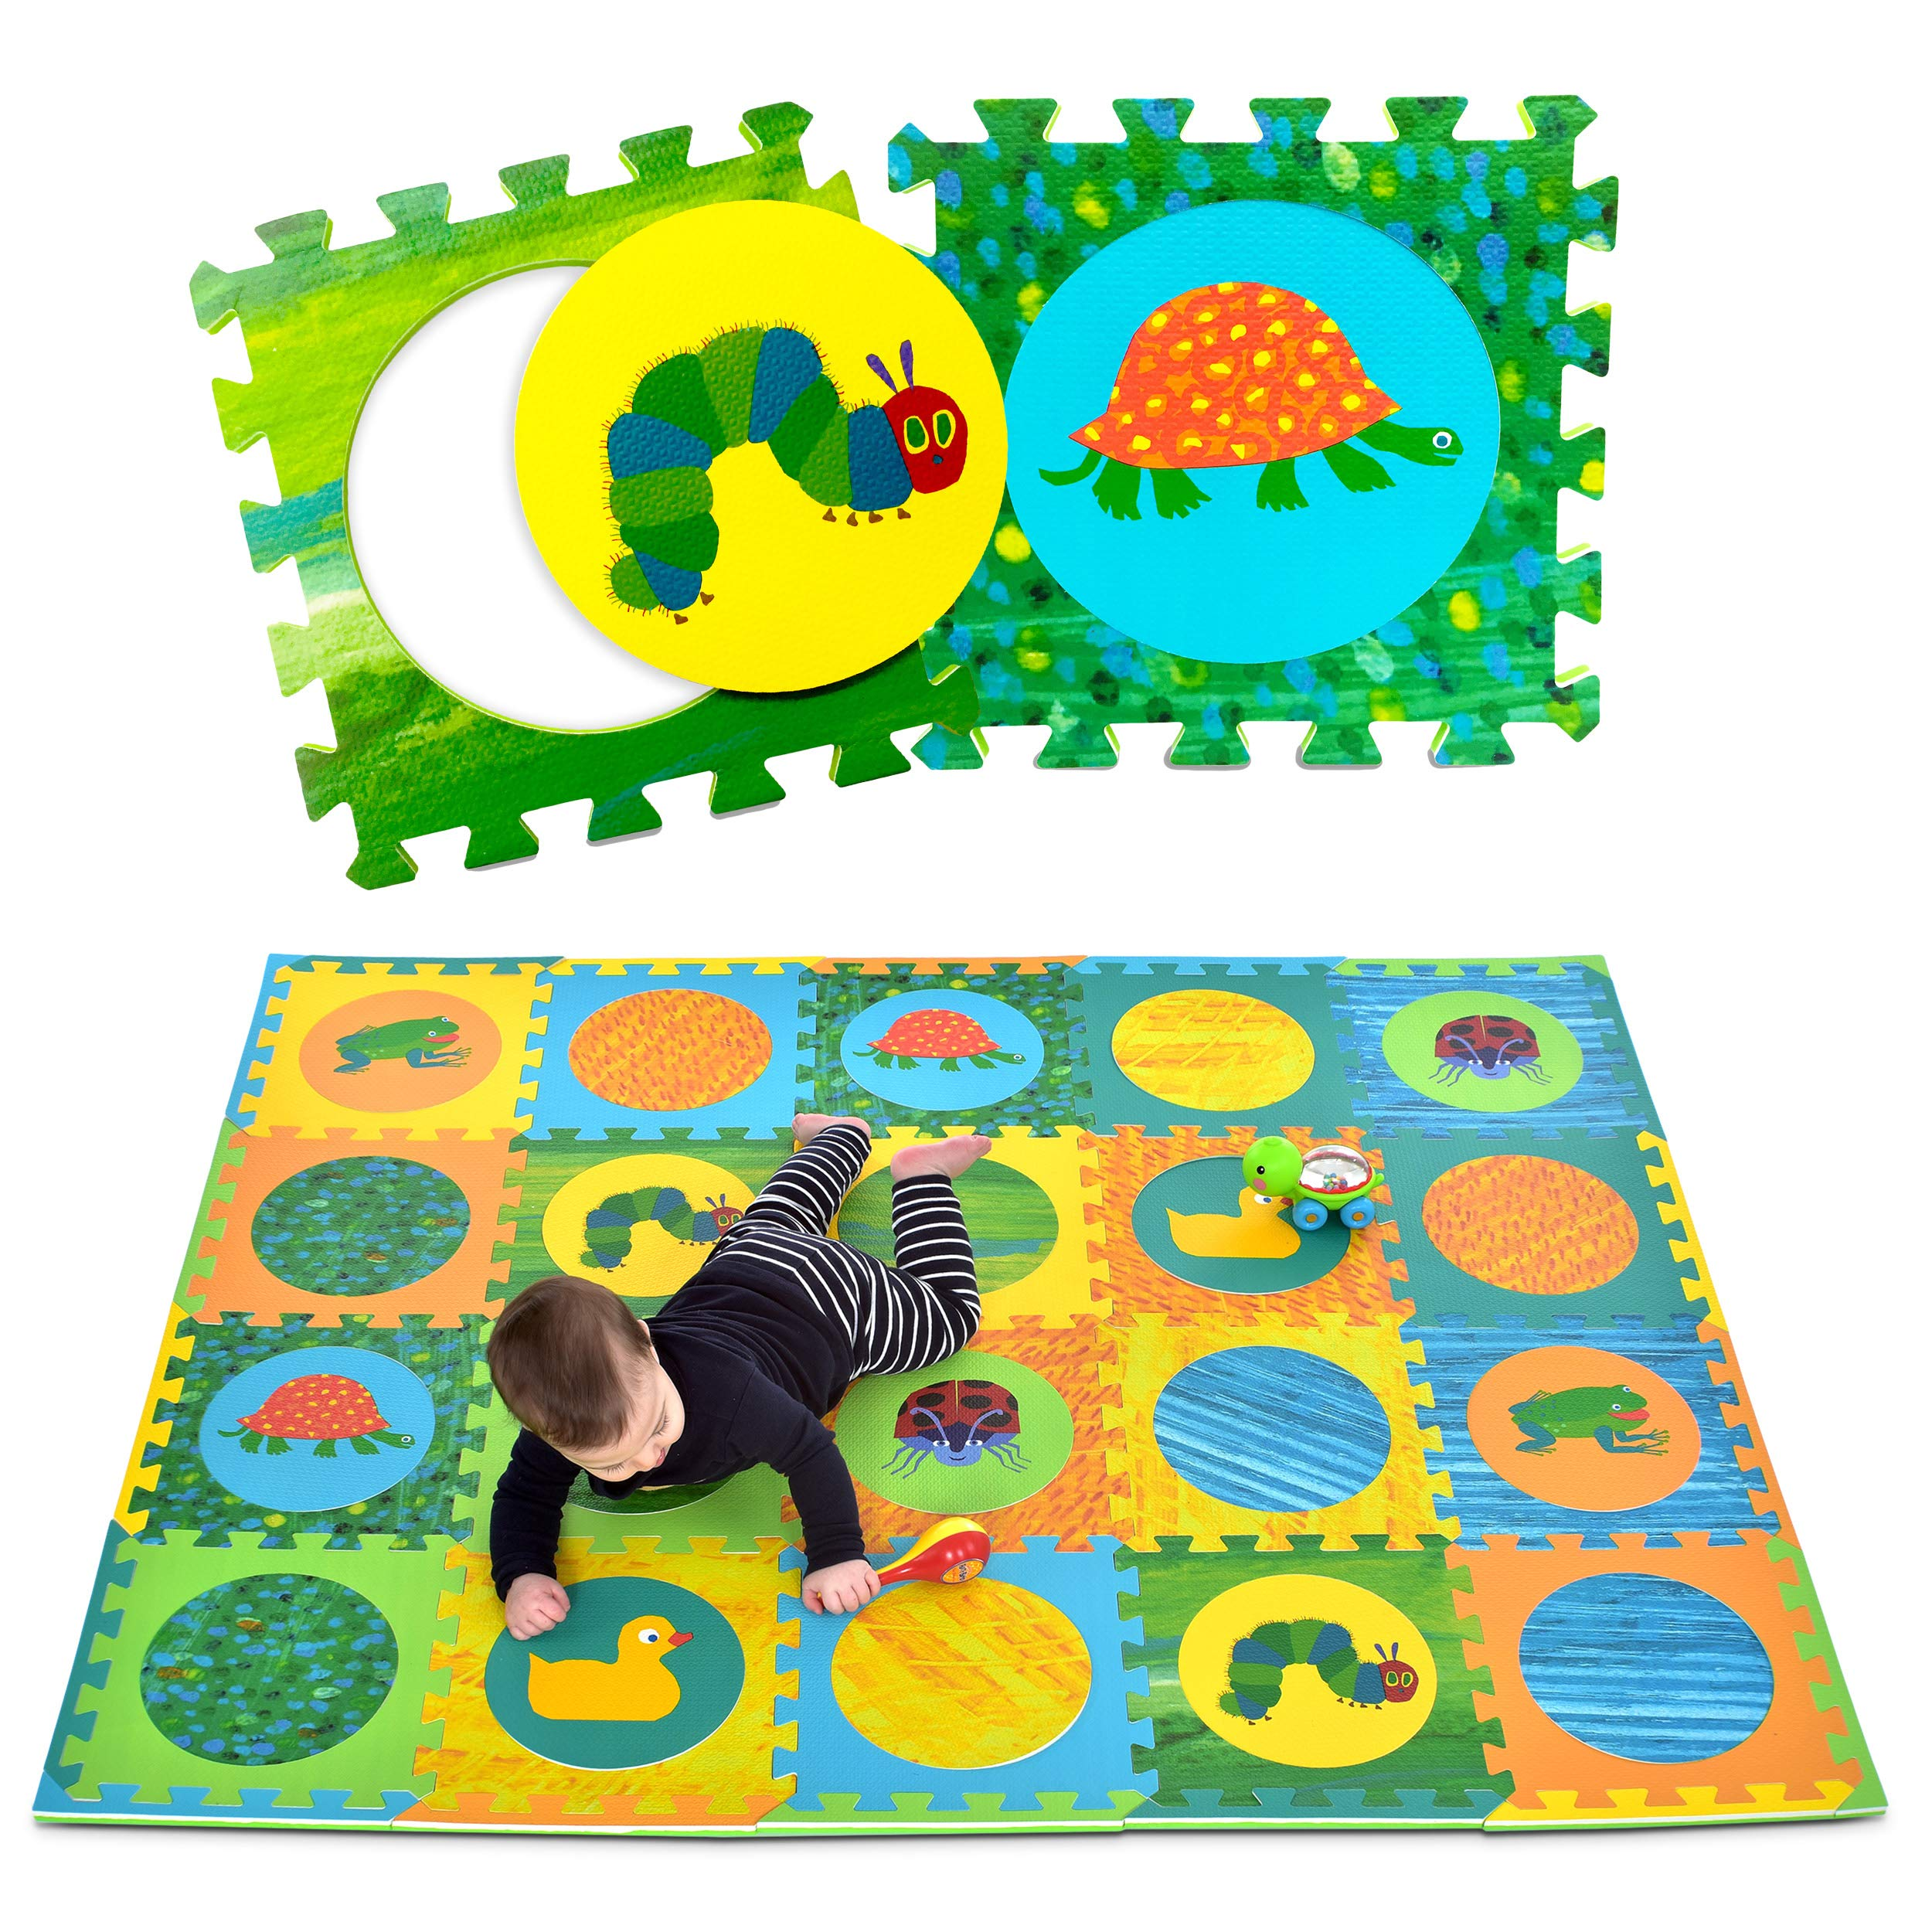 Eric Carle Interlocking Baby Play Mat, Very Hungry Caterpillar Foam Floor Tiles for Infants and Children, 52'' x 65'' by Eric Carle